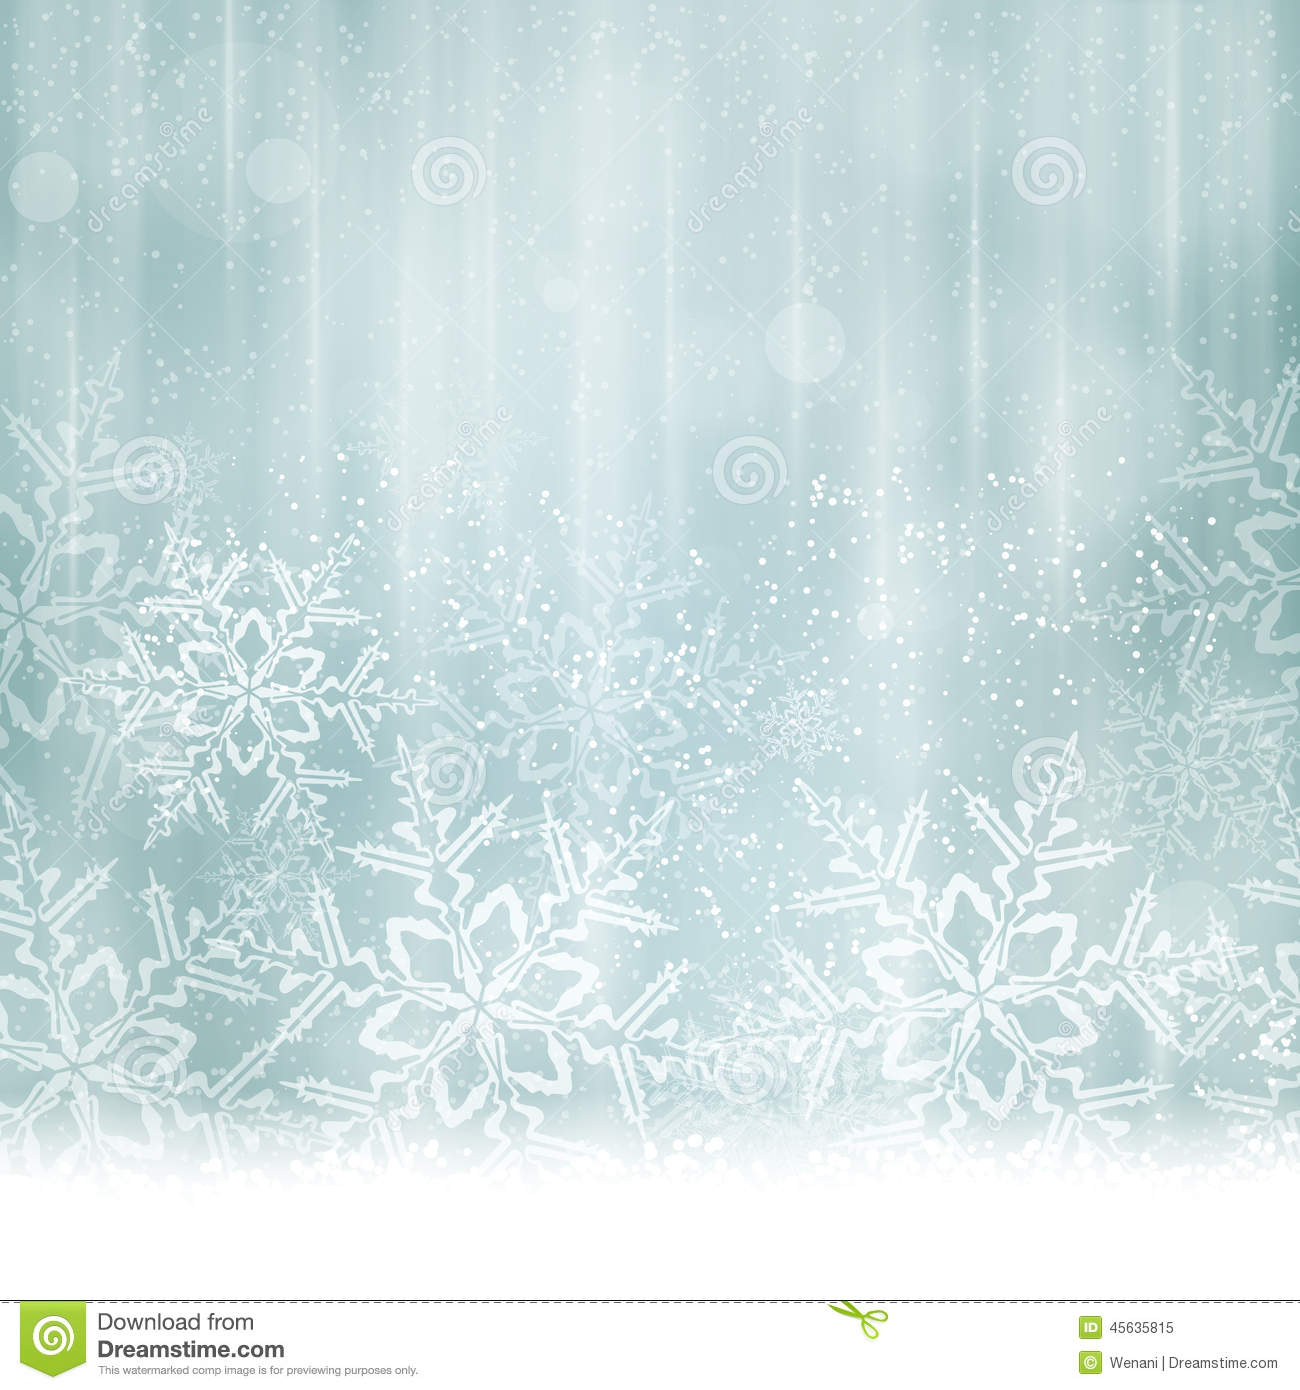 ... snow flakes give it a dreamy and festive feel. Space for your text